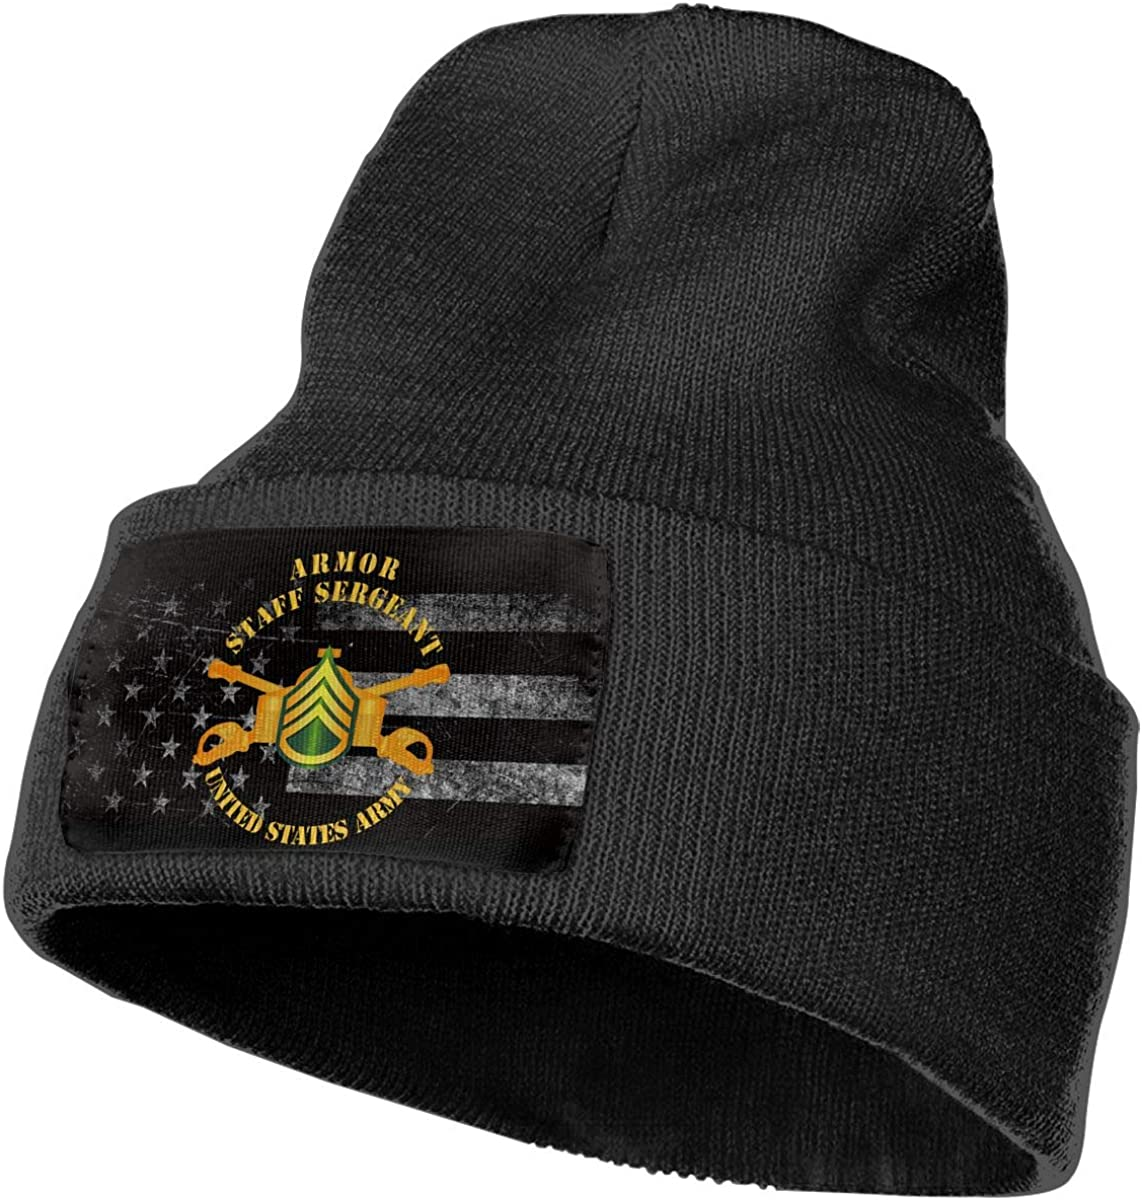 US Army Armor Staff Sergeant Enlisted Mens Beanie Cap Skull Cap Winter Warm Knitting Hats.